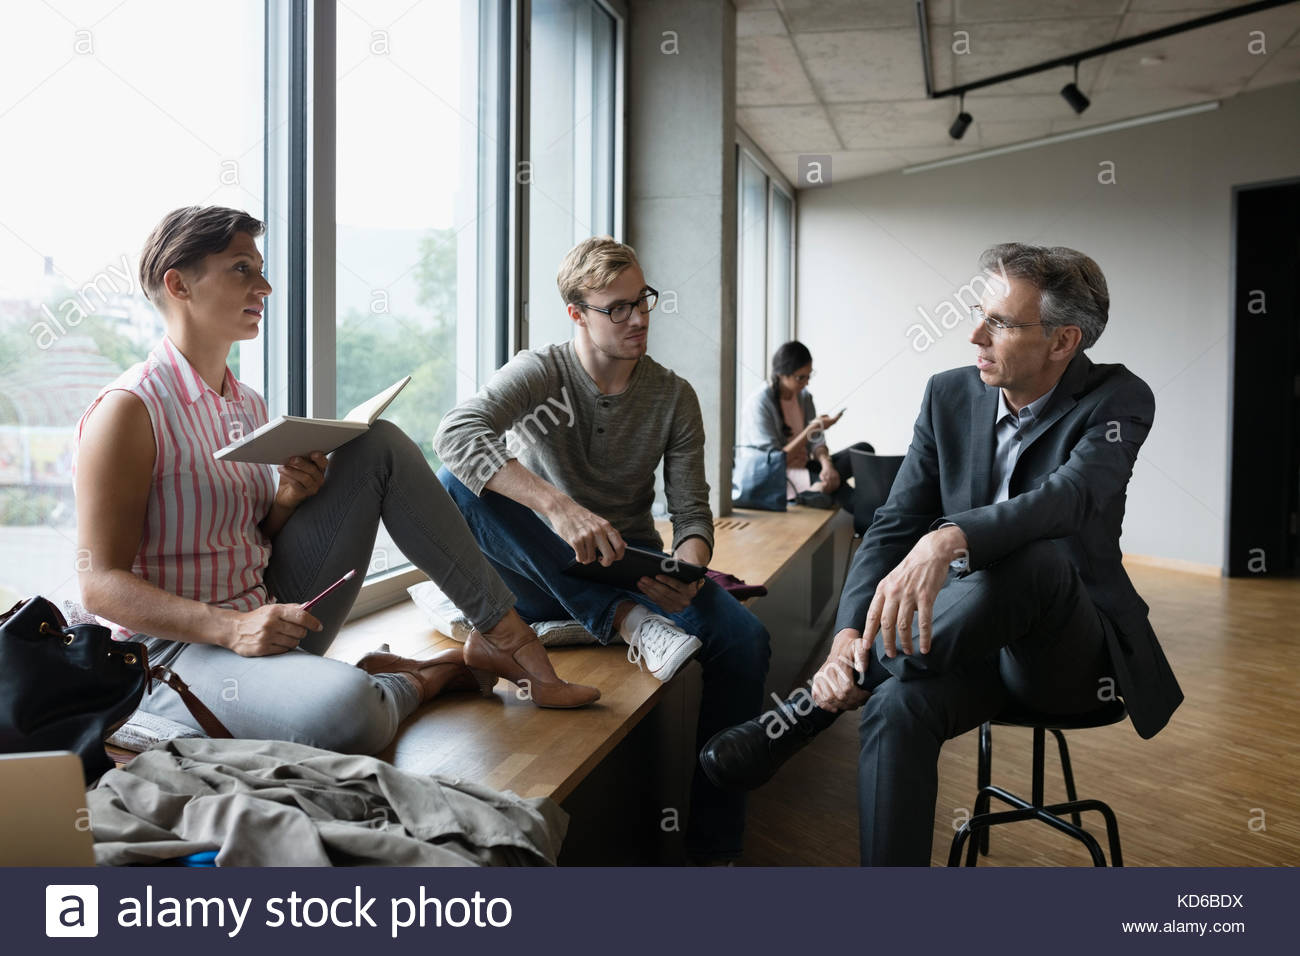 Professor talking to mature students in student lounge - Stock Image